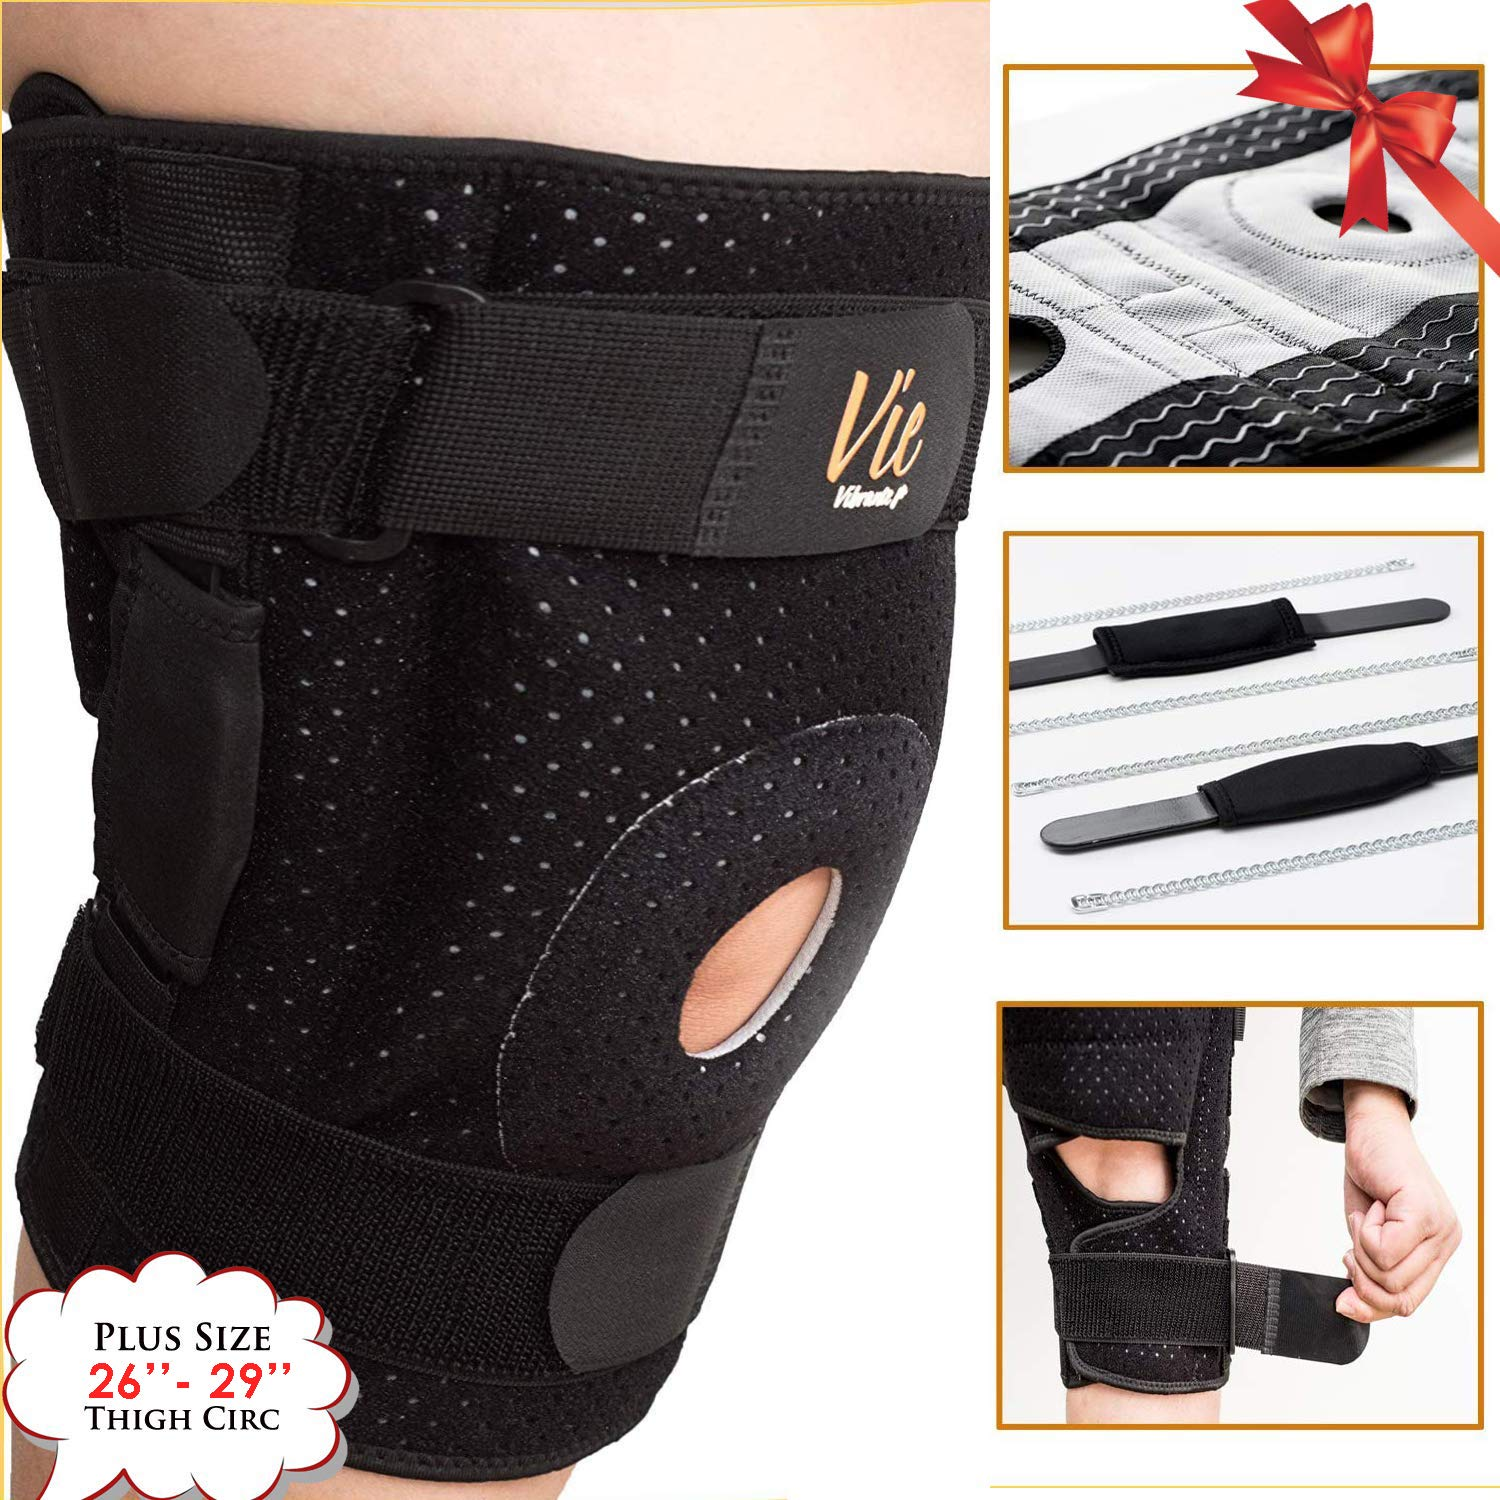 Hinged Knee Brace Plus Size - Newly Engineered Knee Braces with Enhancement on Flexibility, Extra Supportive, Non-Slip and Non Bulky - Wrap Around to fit Larger Legs for Men and Women - Vie Vibrante by VieVibrante